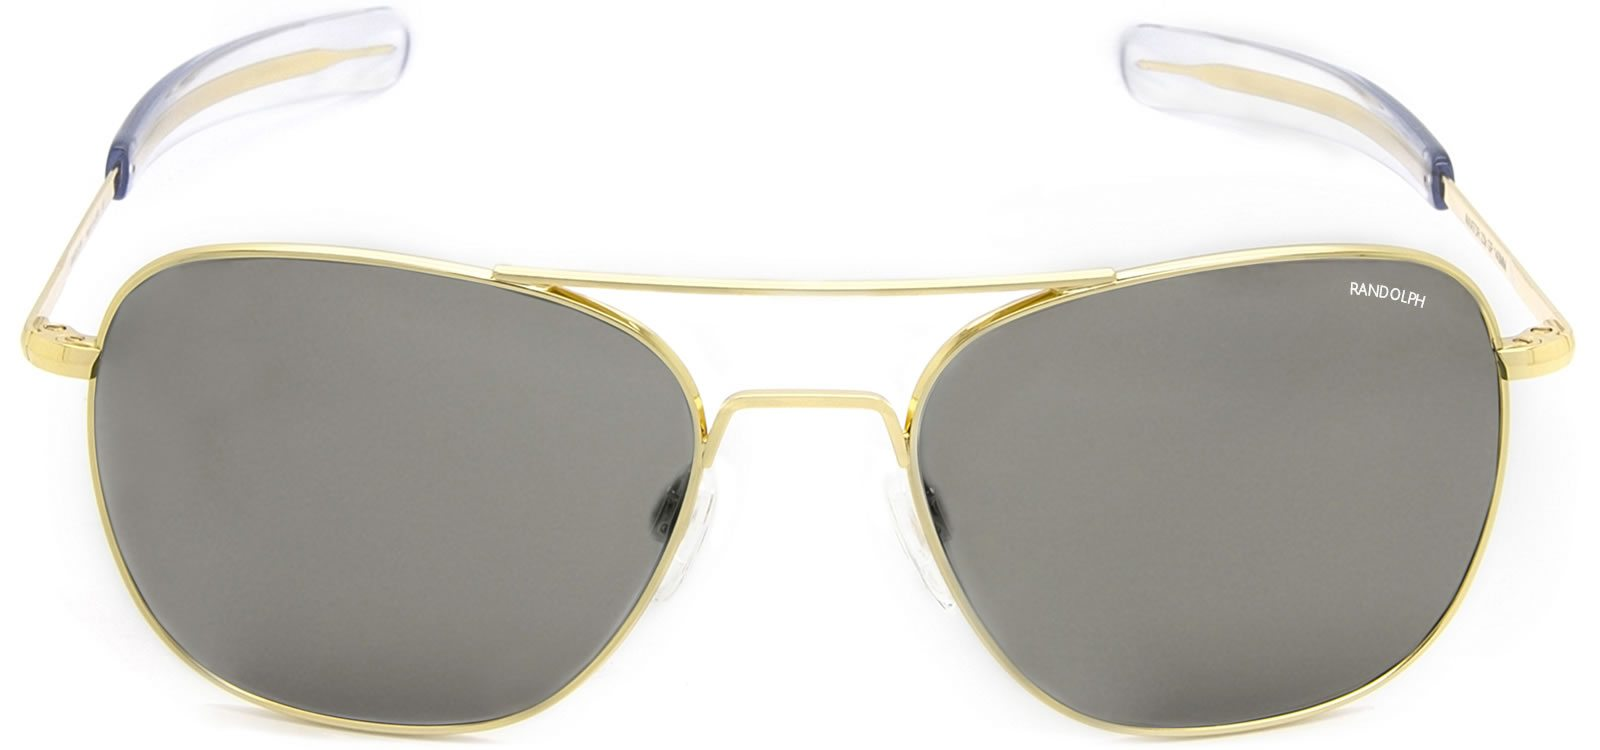 Military Pilot Sunglasses